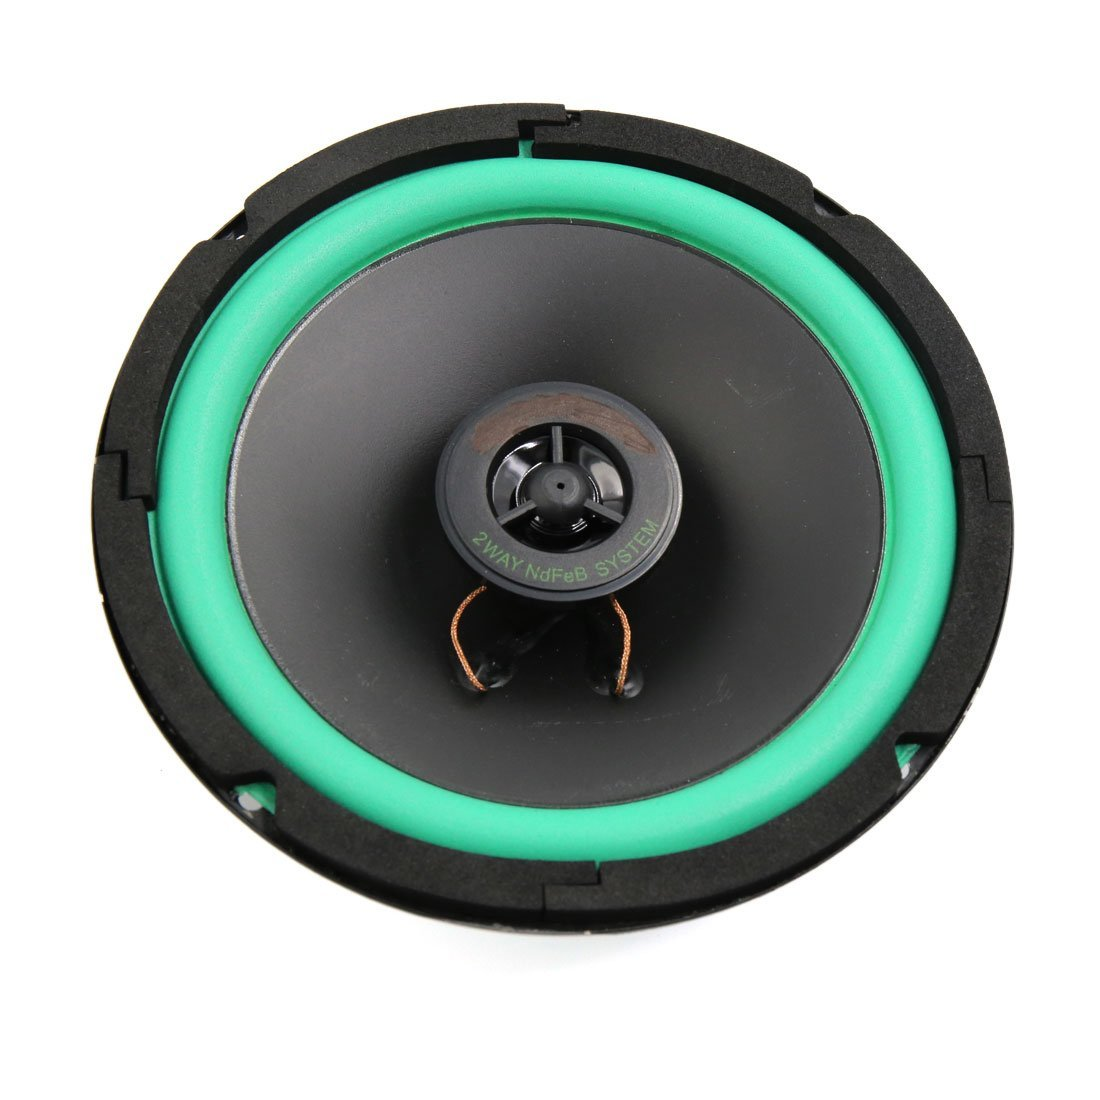 uxcell Round Shaped 6' Two Way Mounting Car Automotive Audio Speaker Horn Siren SYNCF2002519